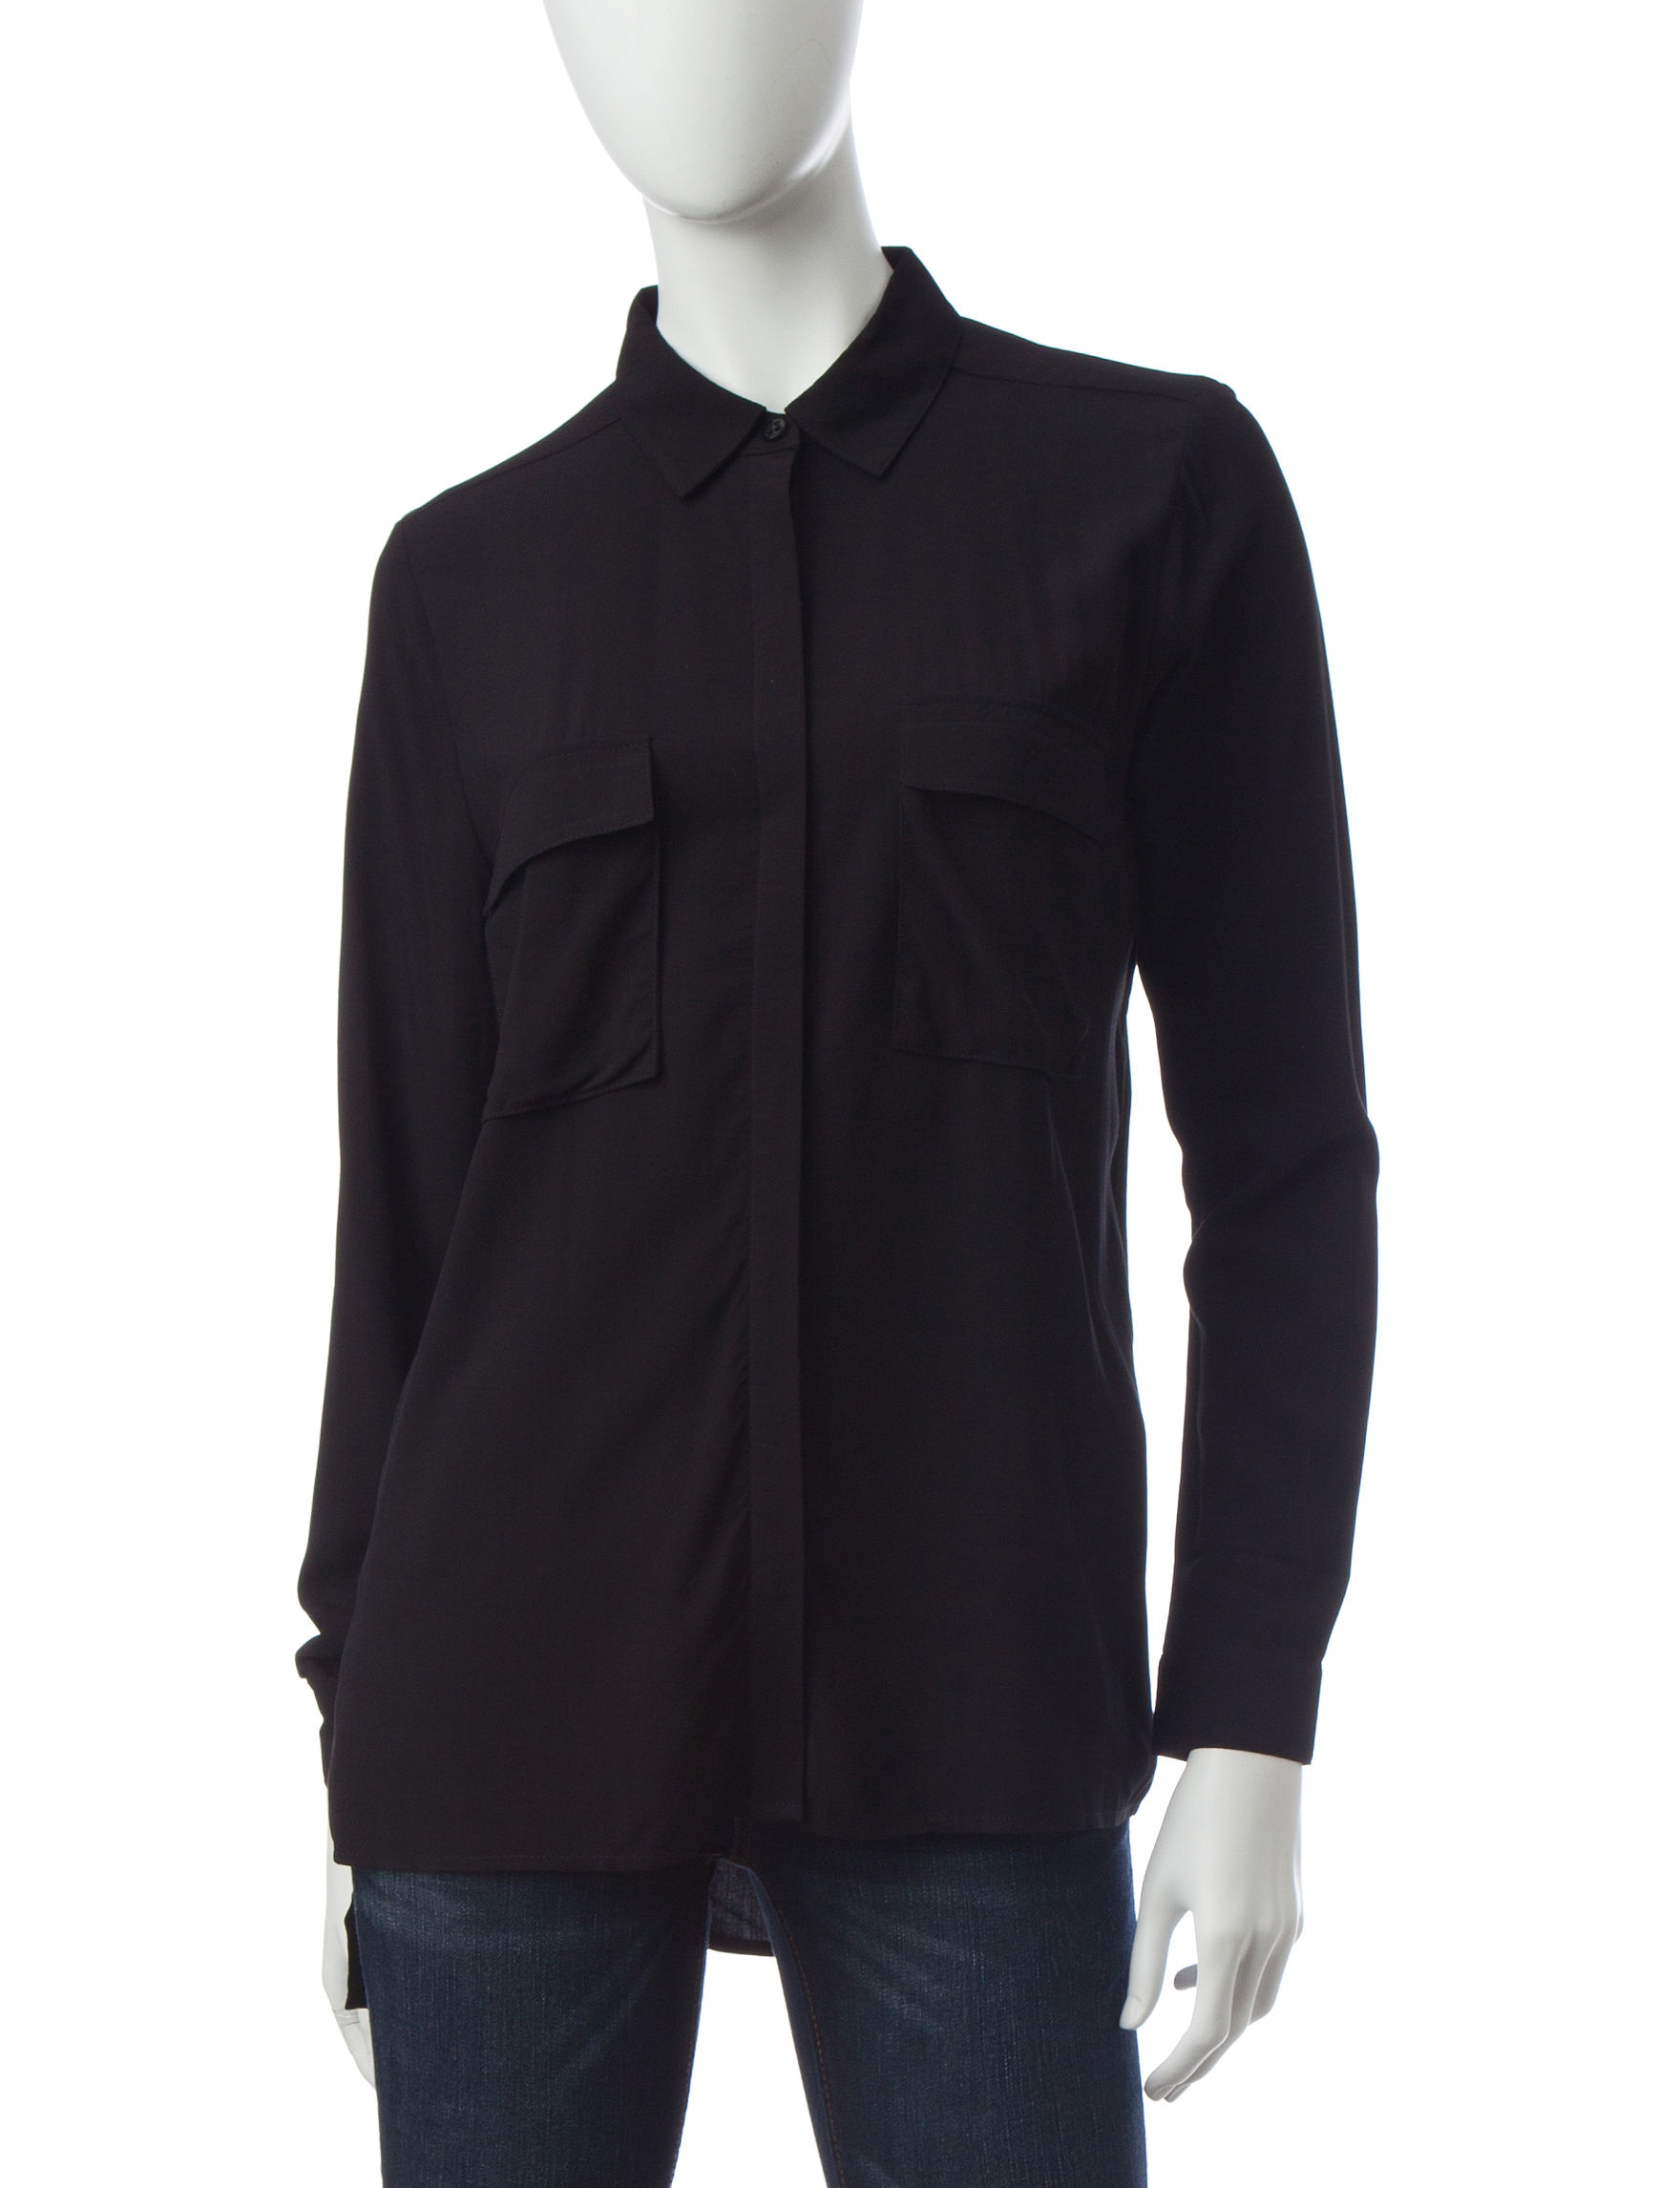 Signature Studio Black Shirts & Blouses